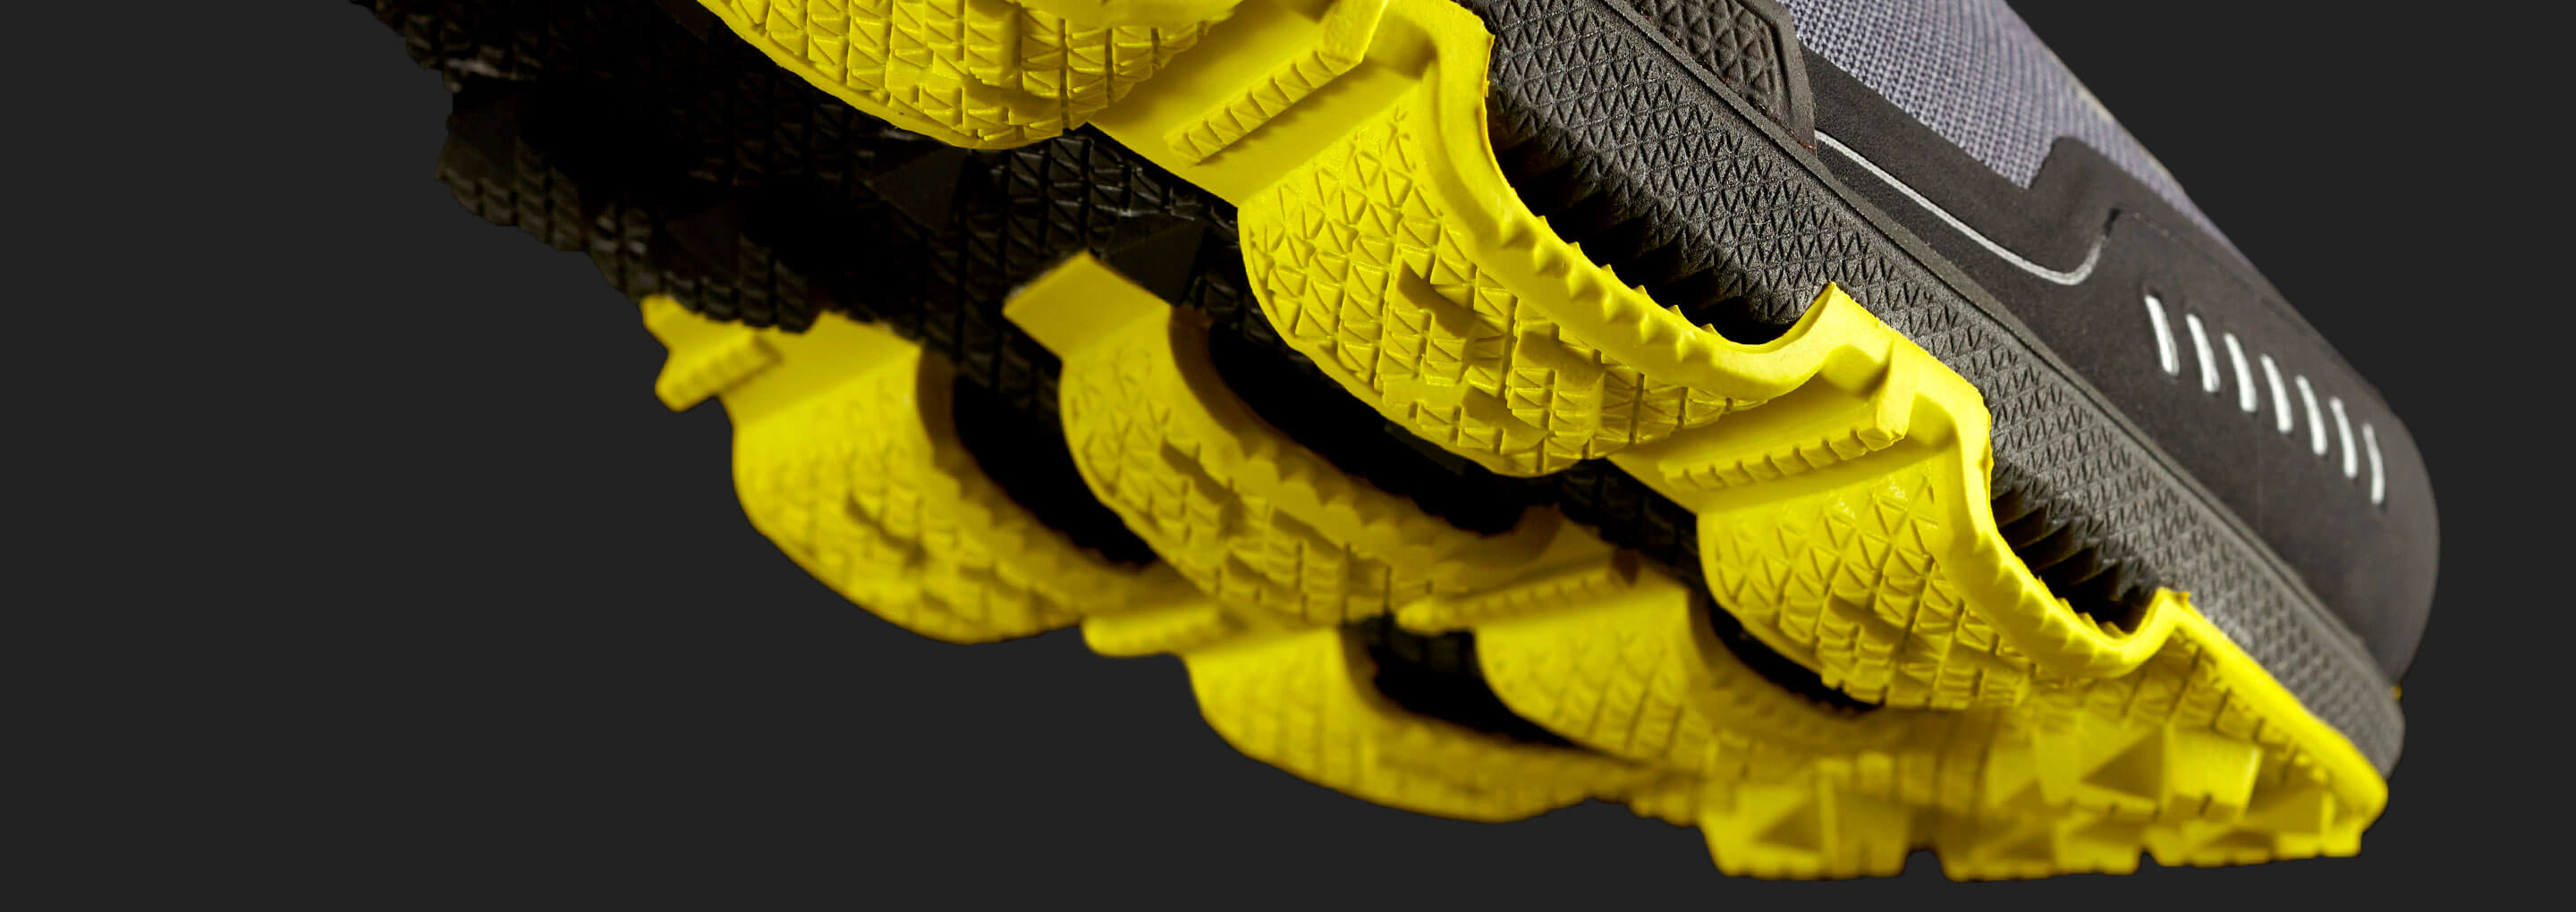 Intelligent CloudTec® cushioning